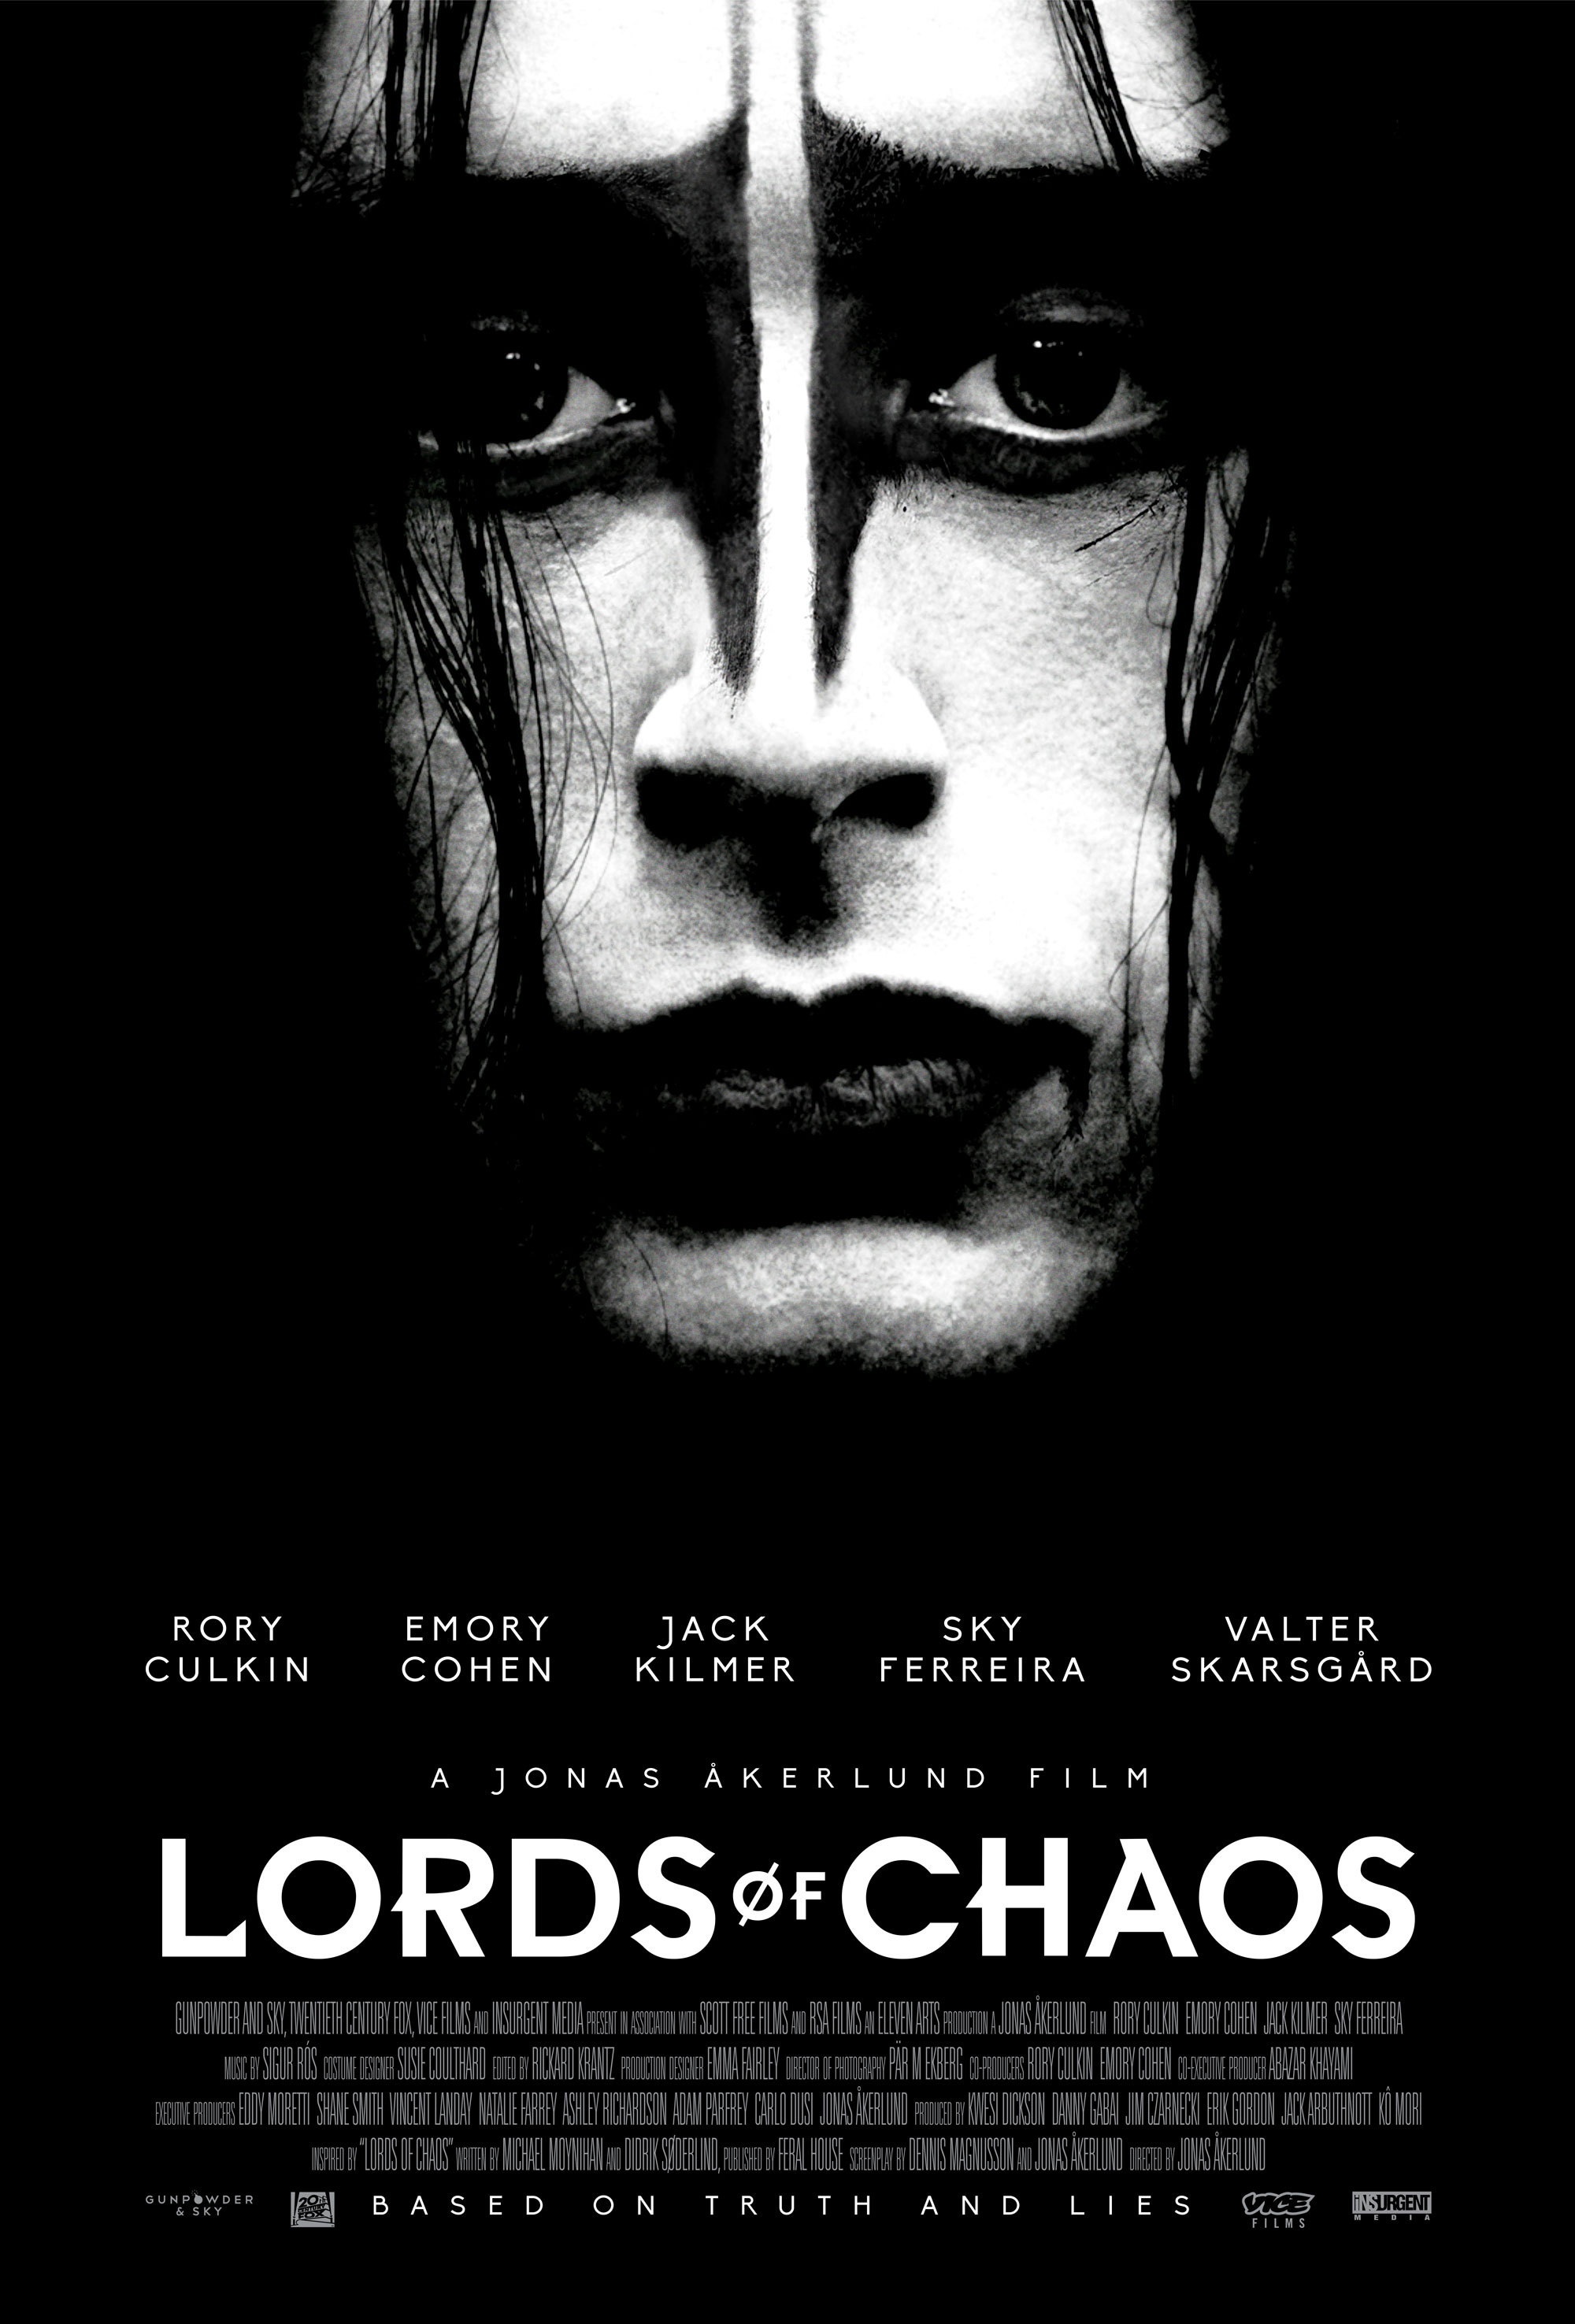 Lords of Chaos' Turns from Music to Murder [Trailer] - Bloody Disgusting